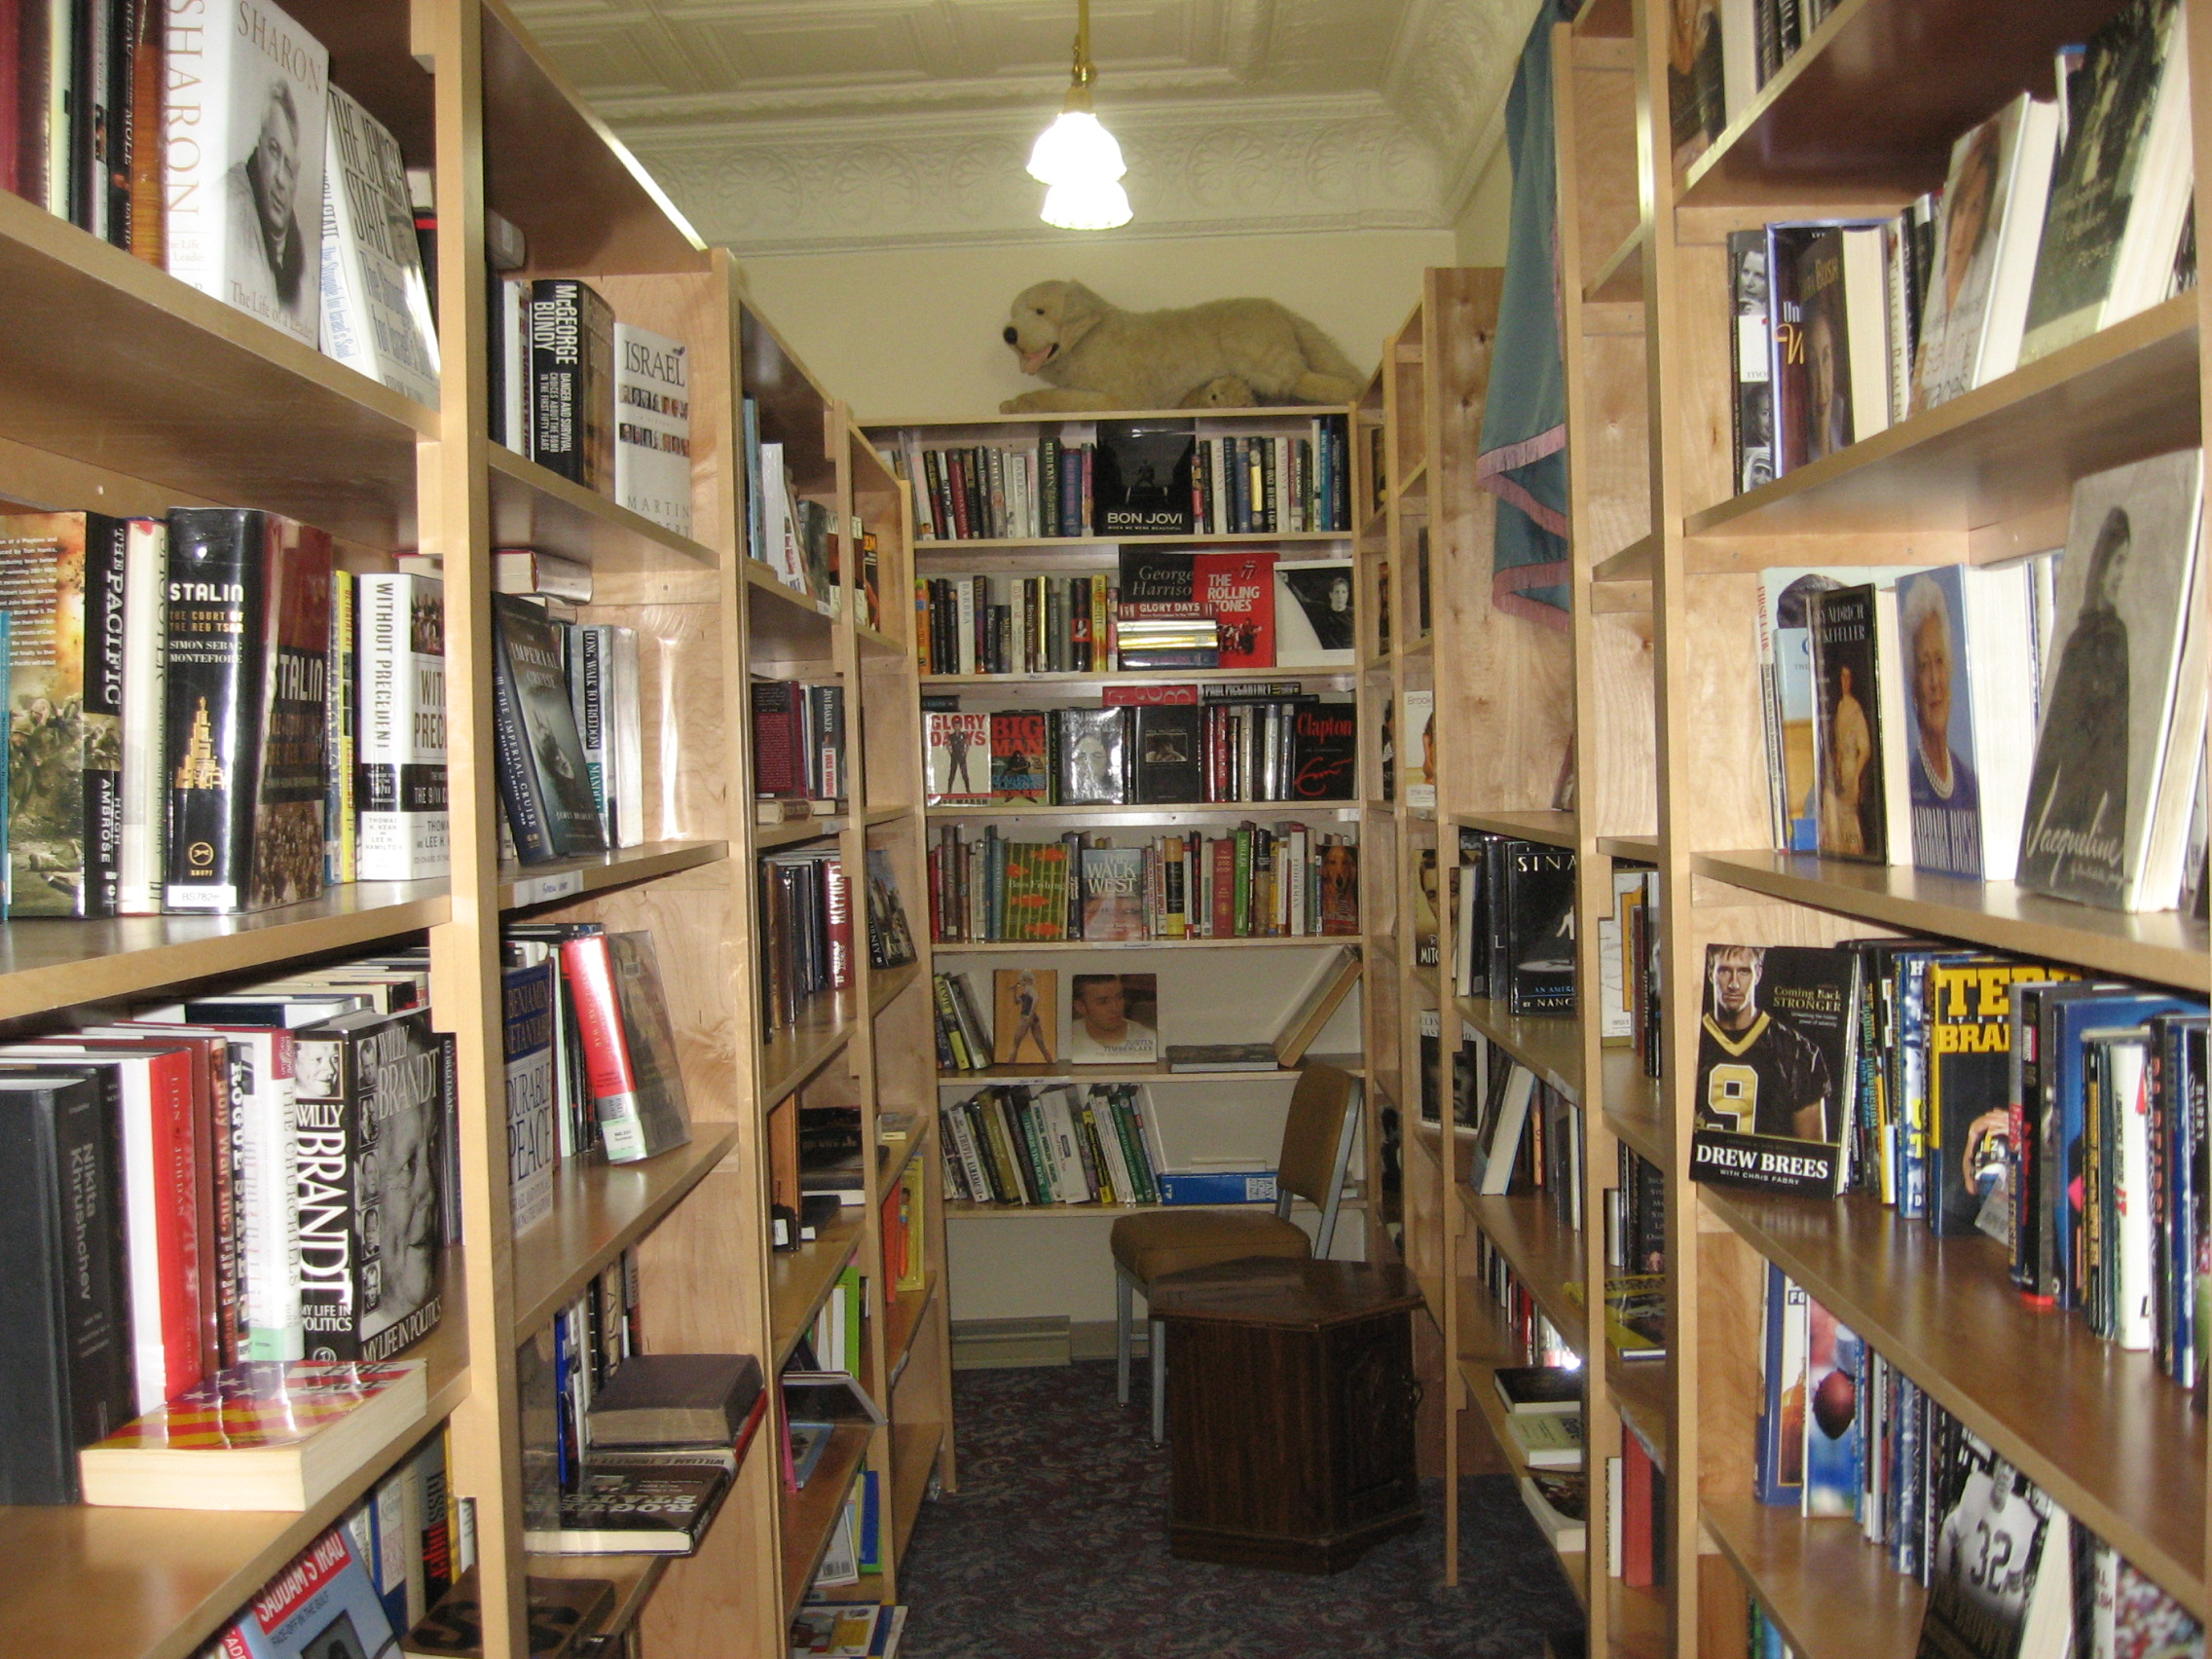 Aisle of Books